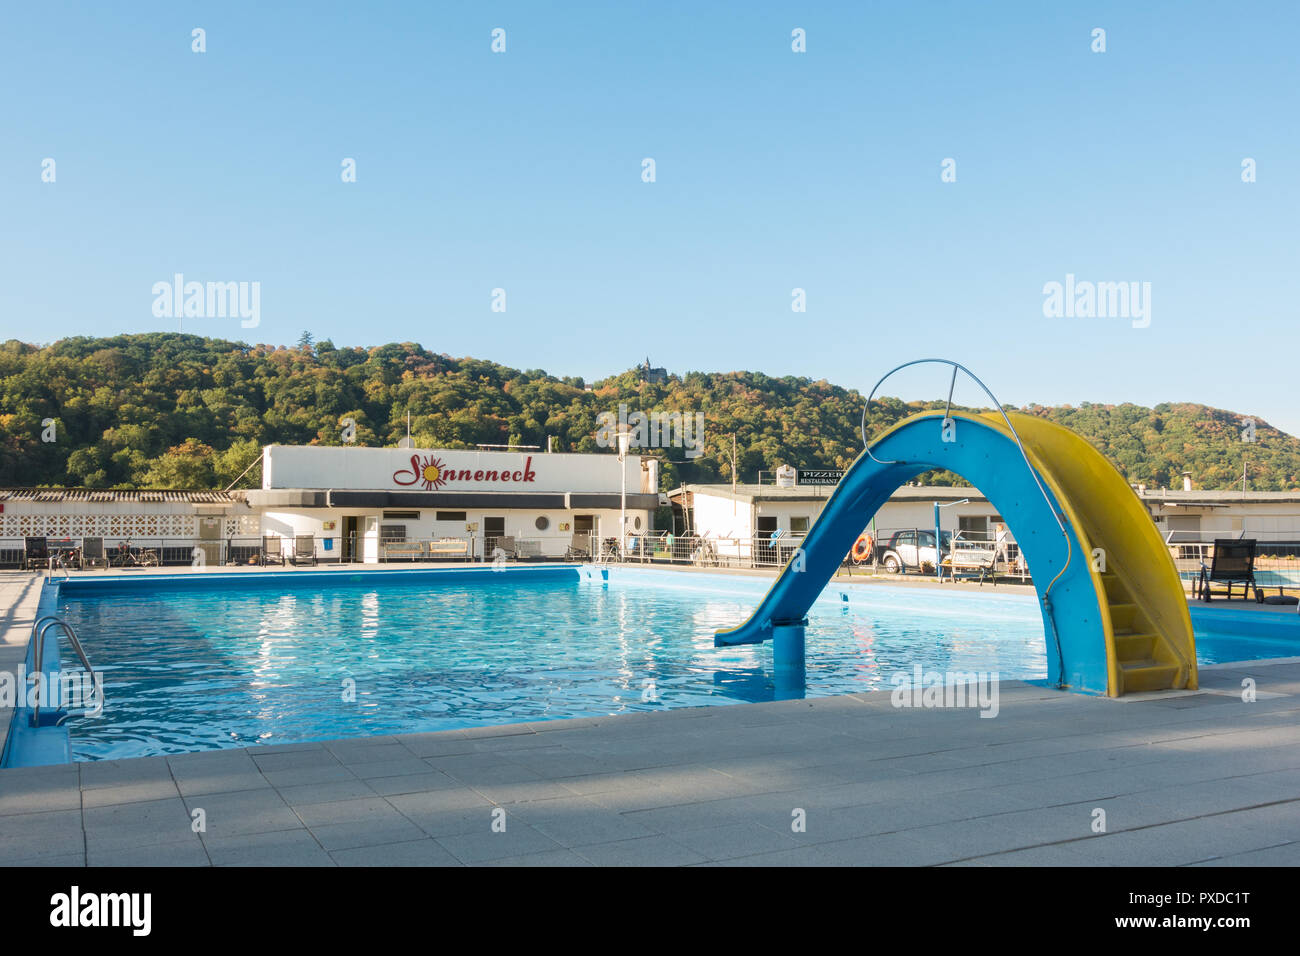 German campsite by the Rhine with swimming pool - Sonneneck camping, Boppard, Germany, Europe - Stock Image